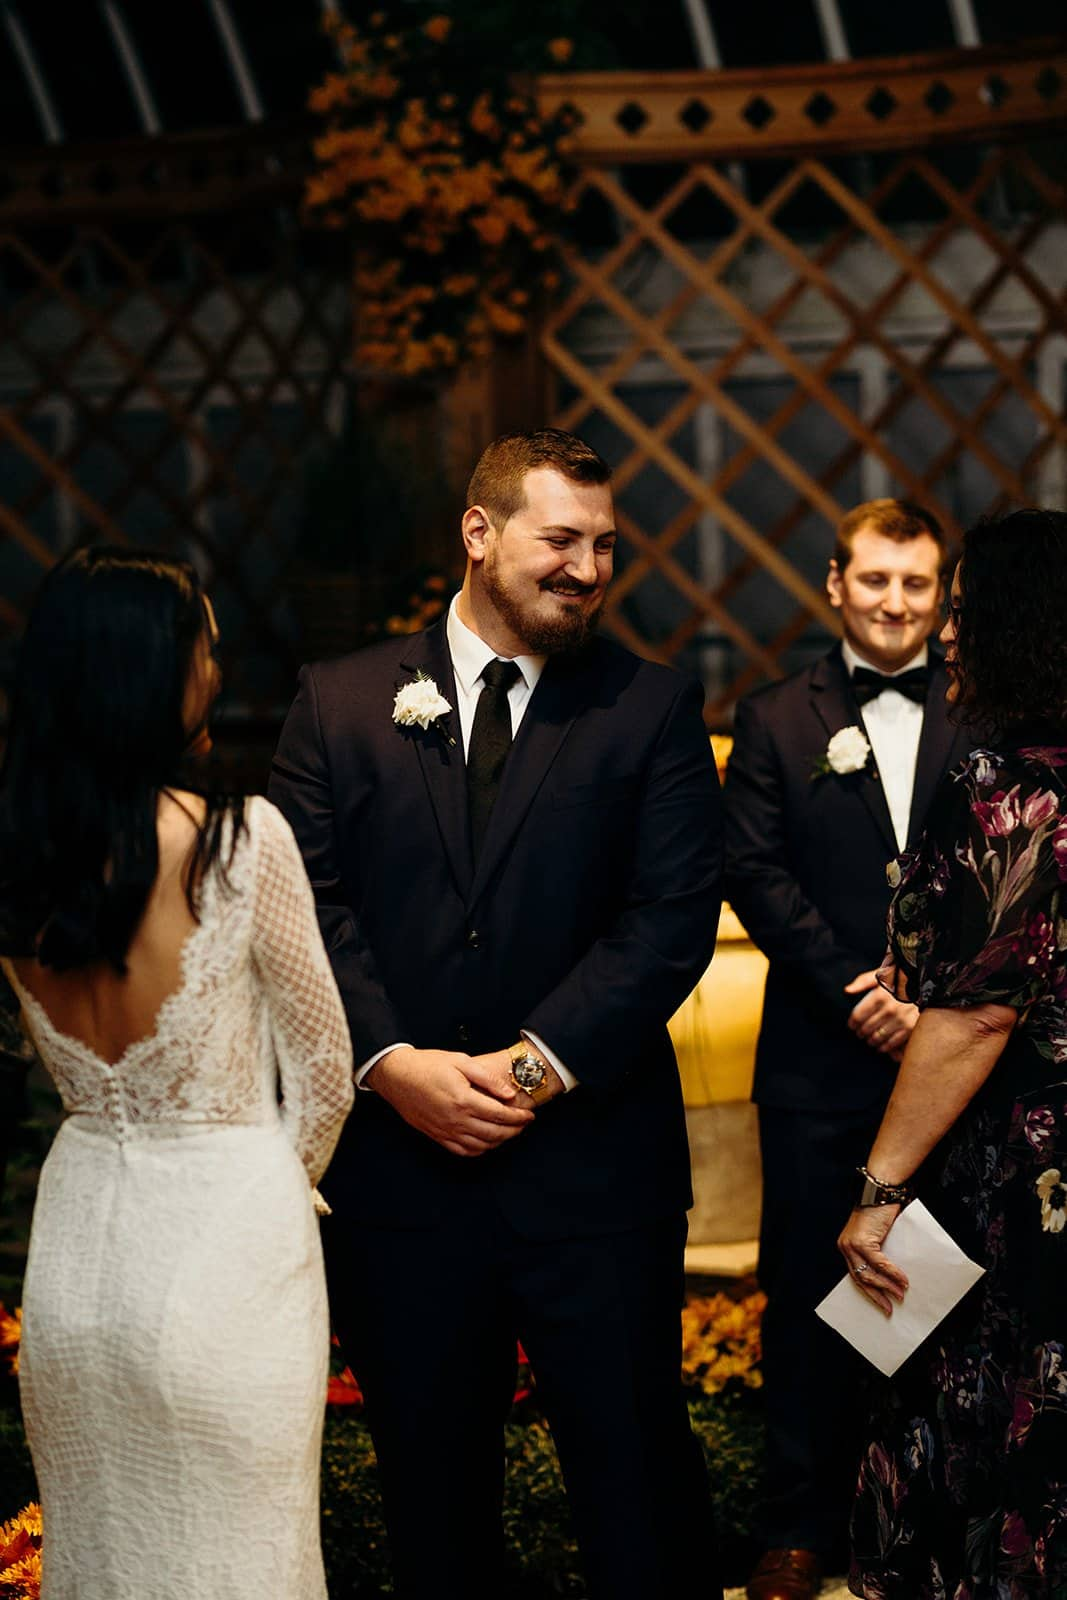 groom smiles at wedding guest